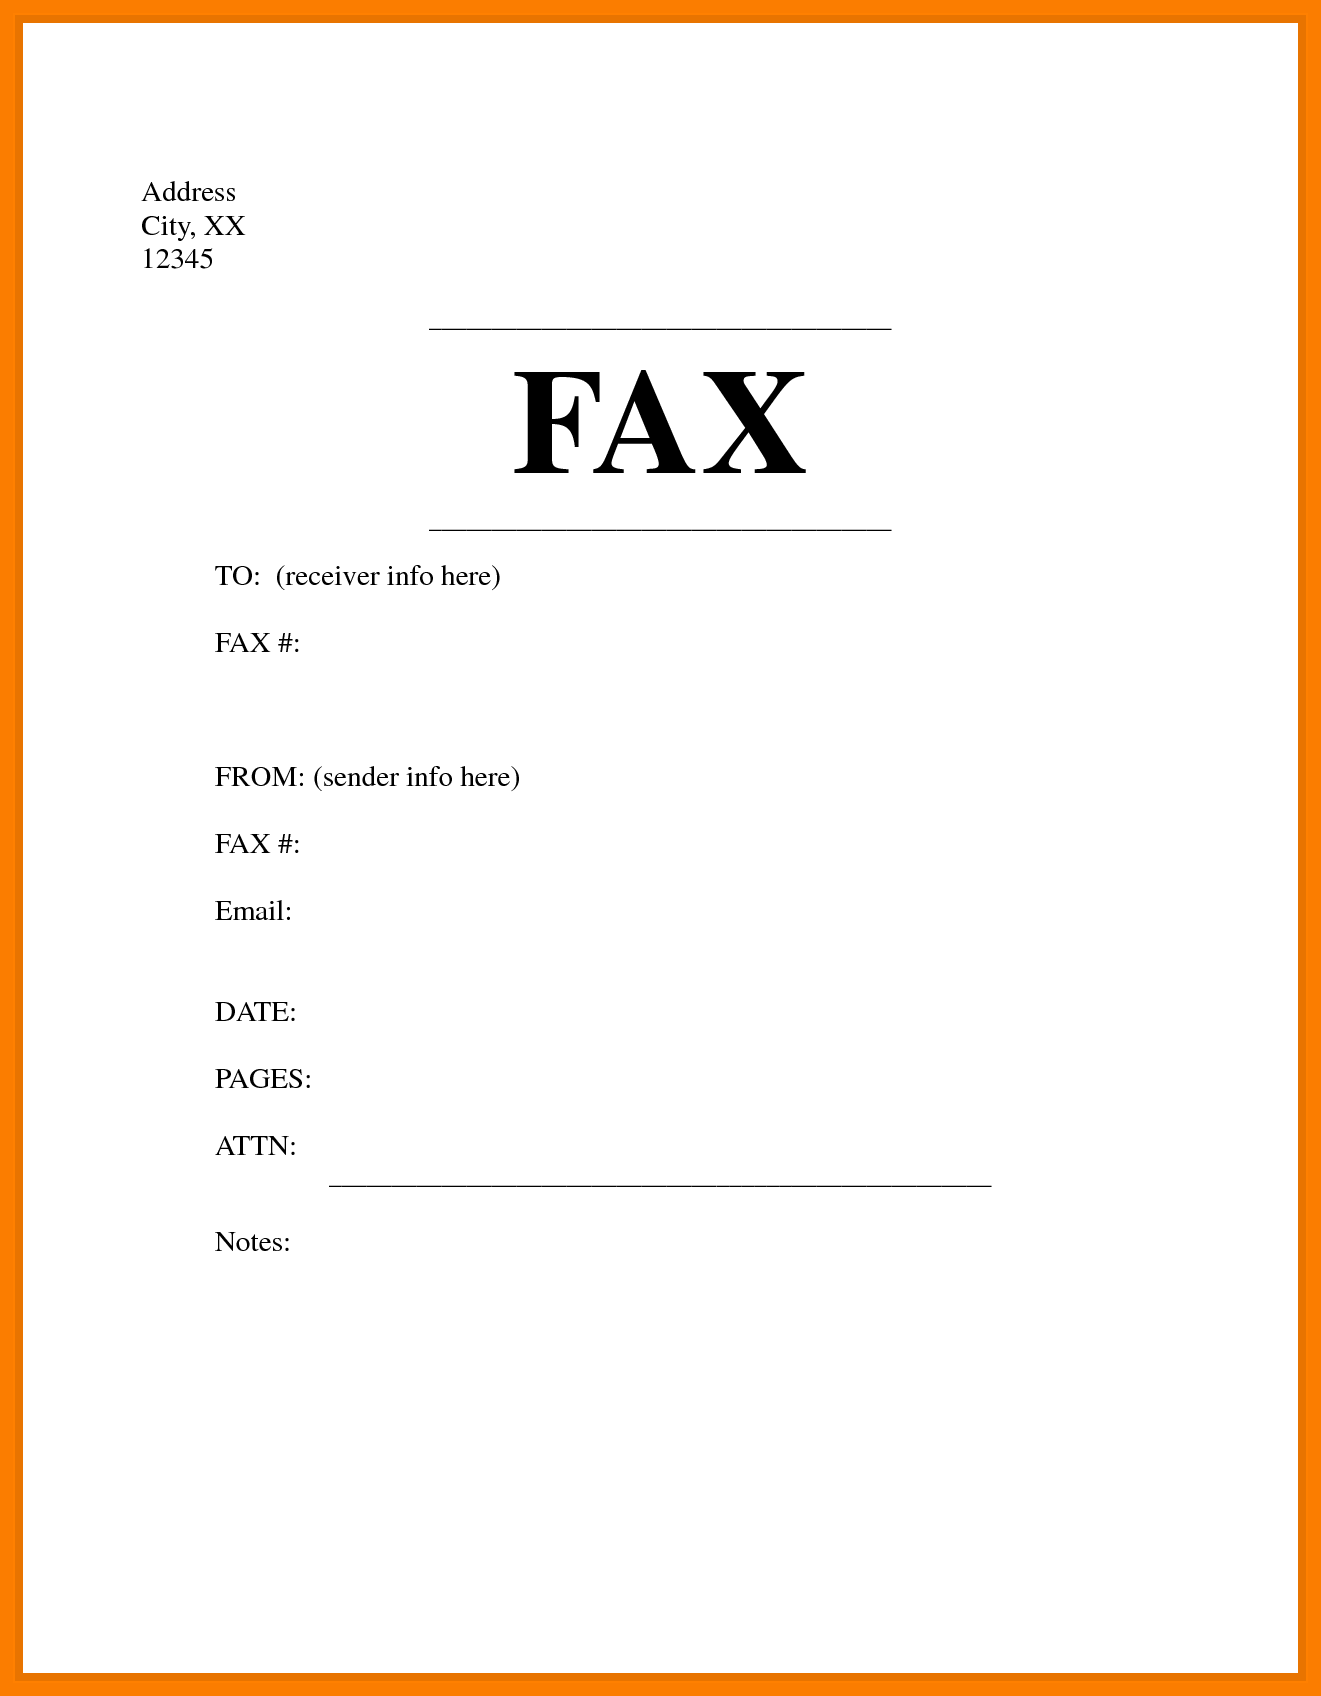 Fax Cover Sheet Template Printable